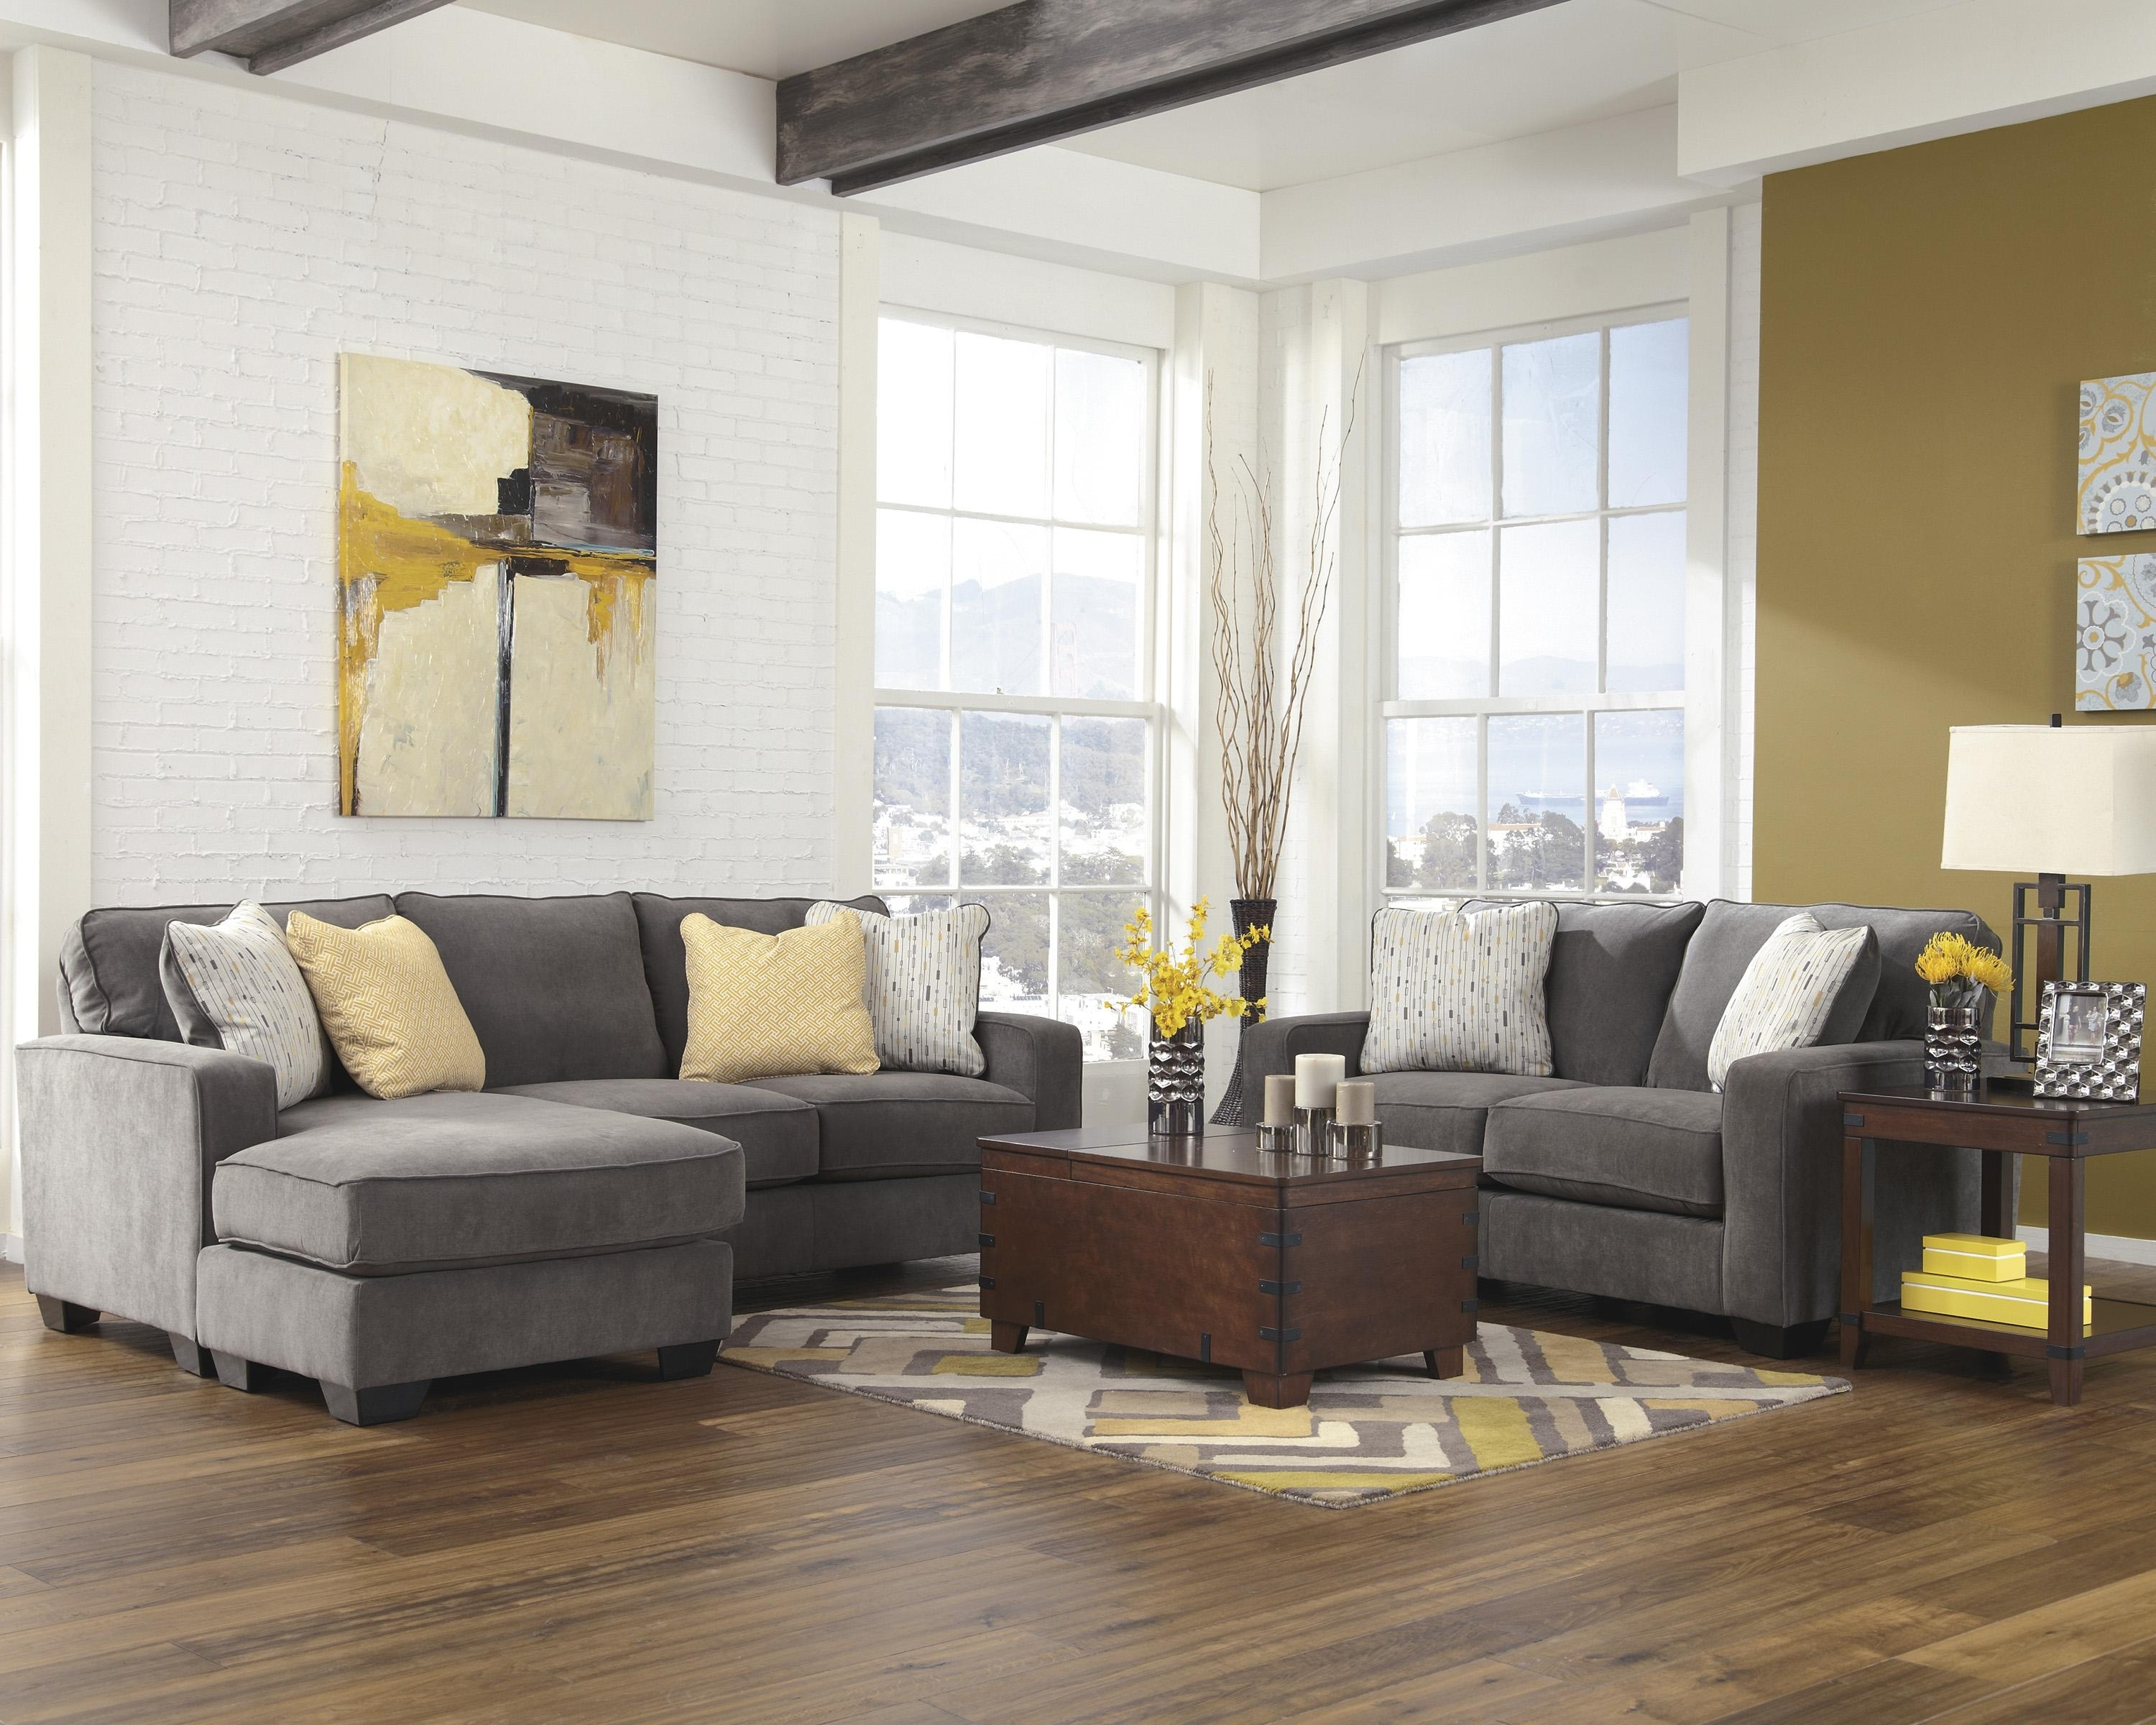 Signature Designashley Hodan – Marble Contemporary Sofa Chaise Intended For Trendy Hodan Sofas With Chaise (View 7 of 15)